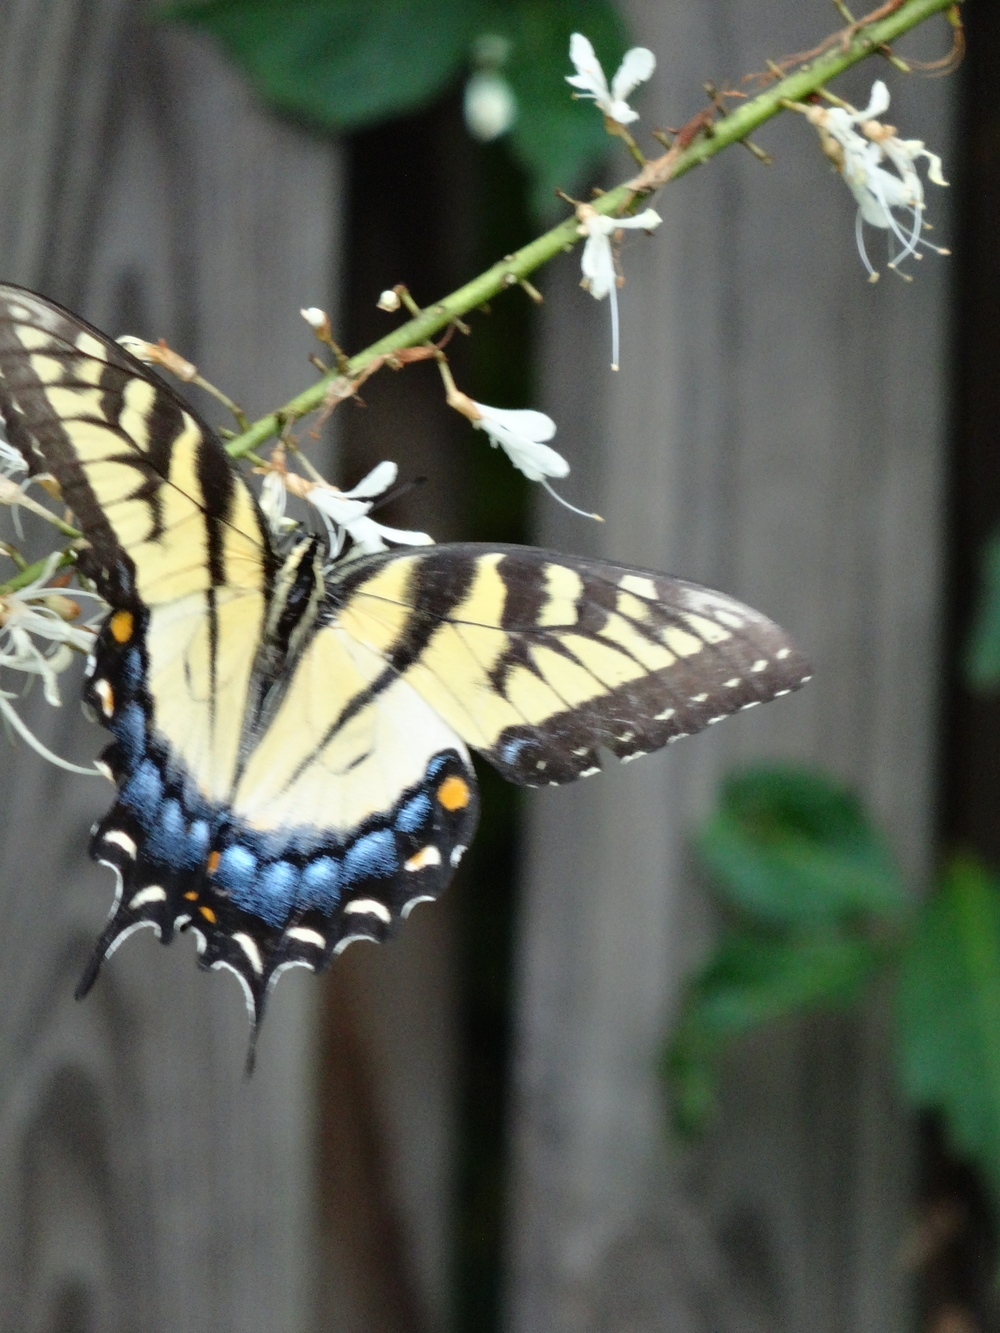 Tiger swallowtail on bottlebrush buckeye